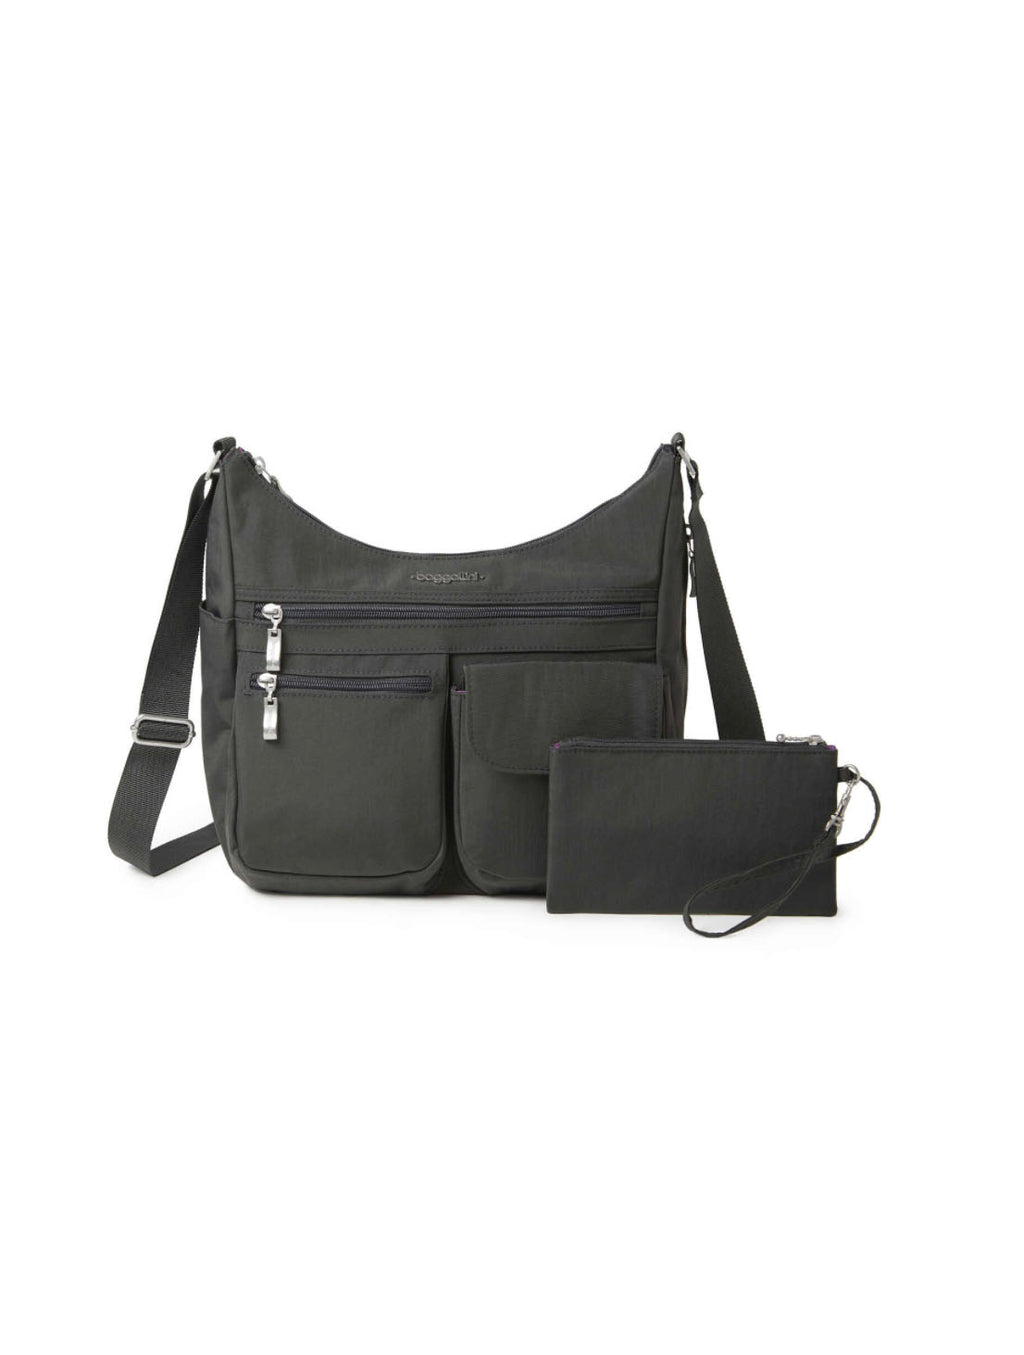 Baggalini Everywhere Bag in Charcoal